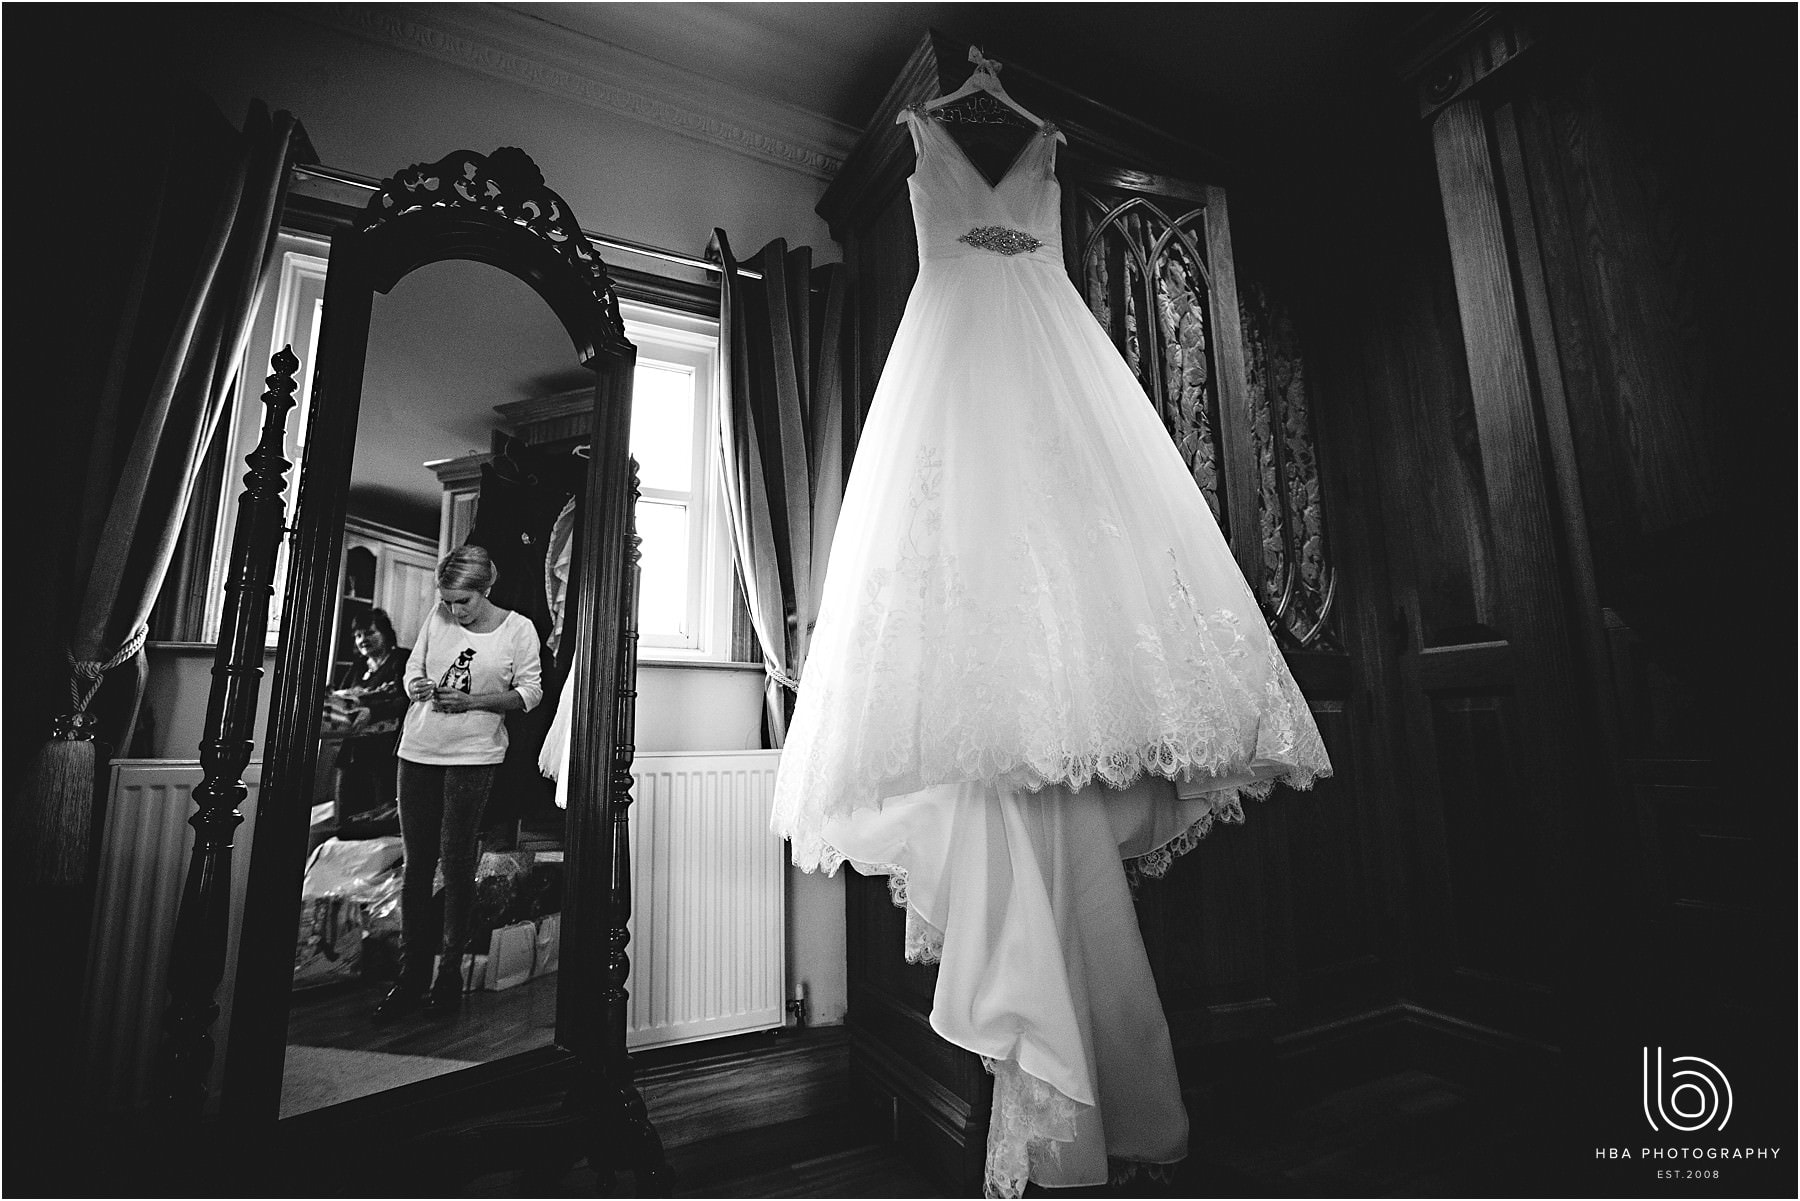 The wedding dress hanging up in black-and-white